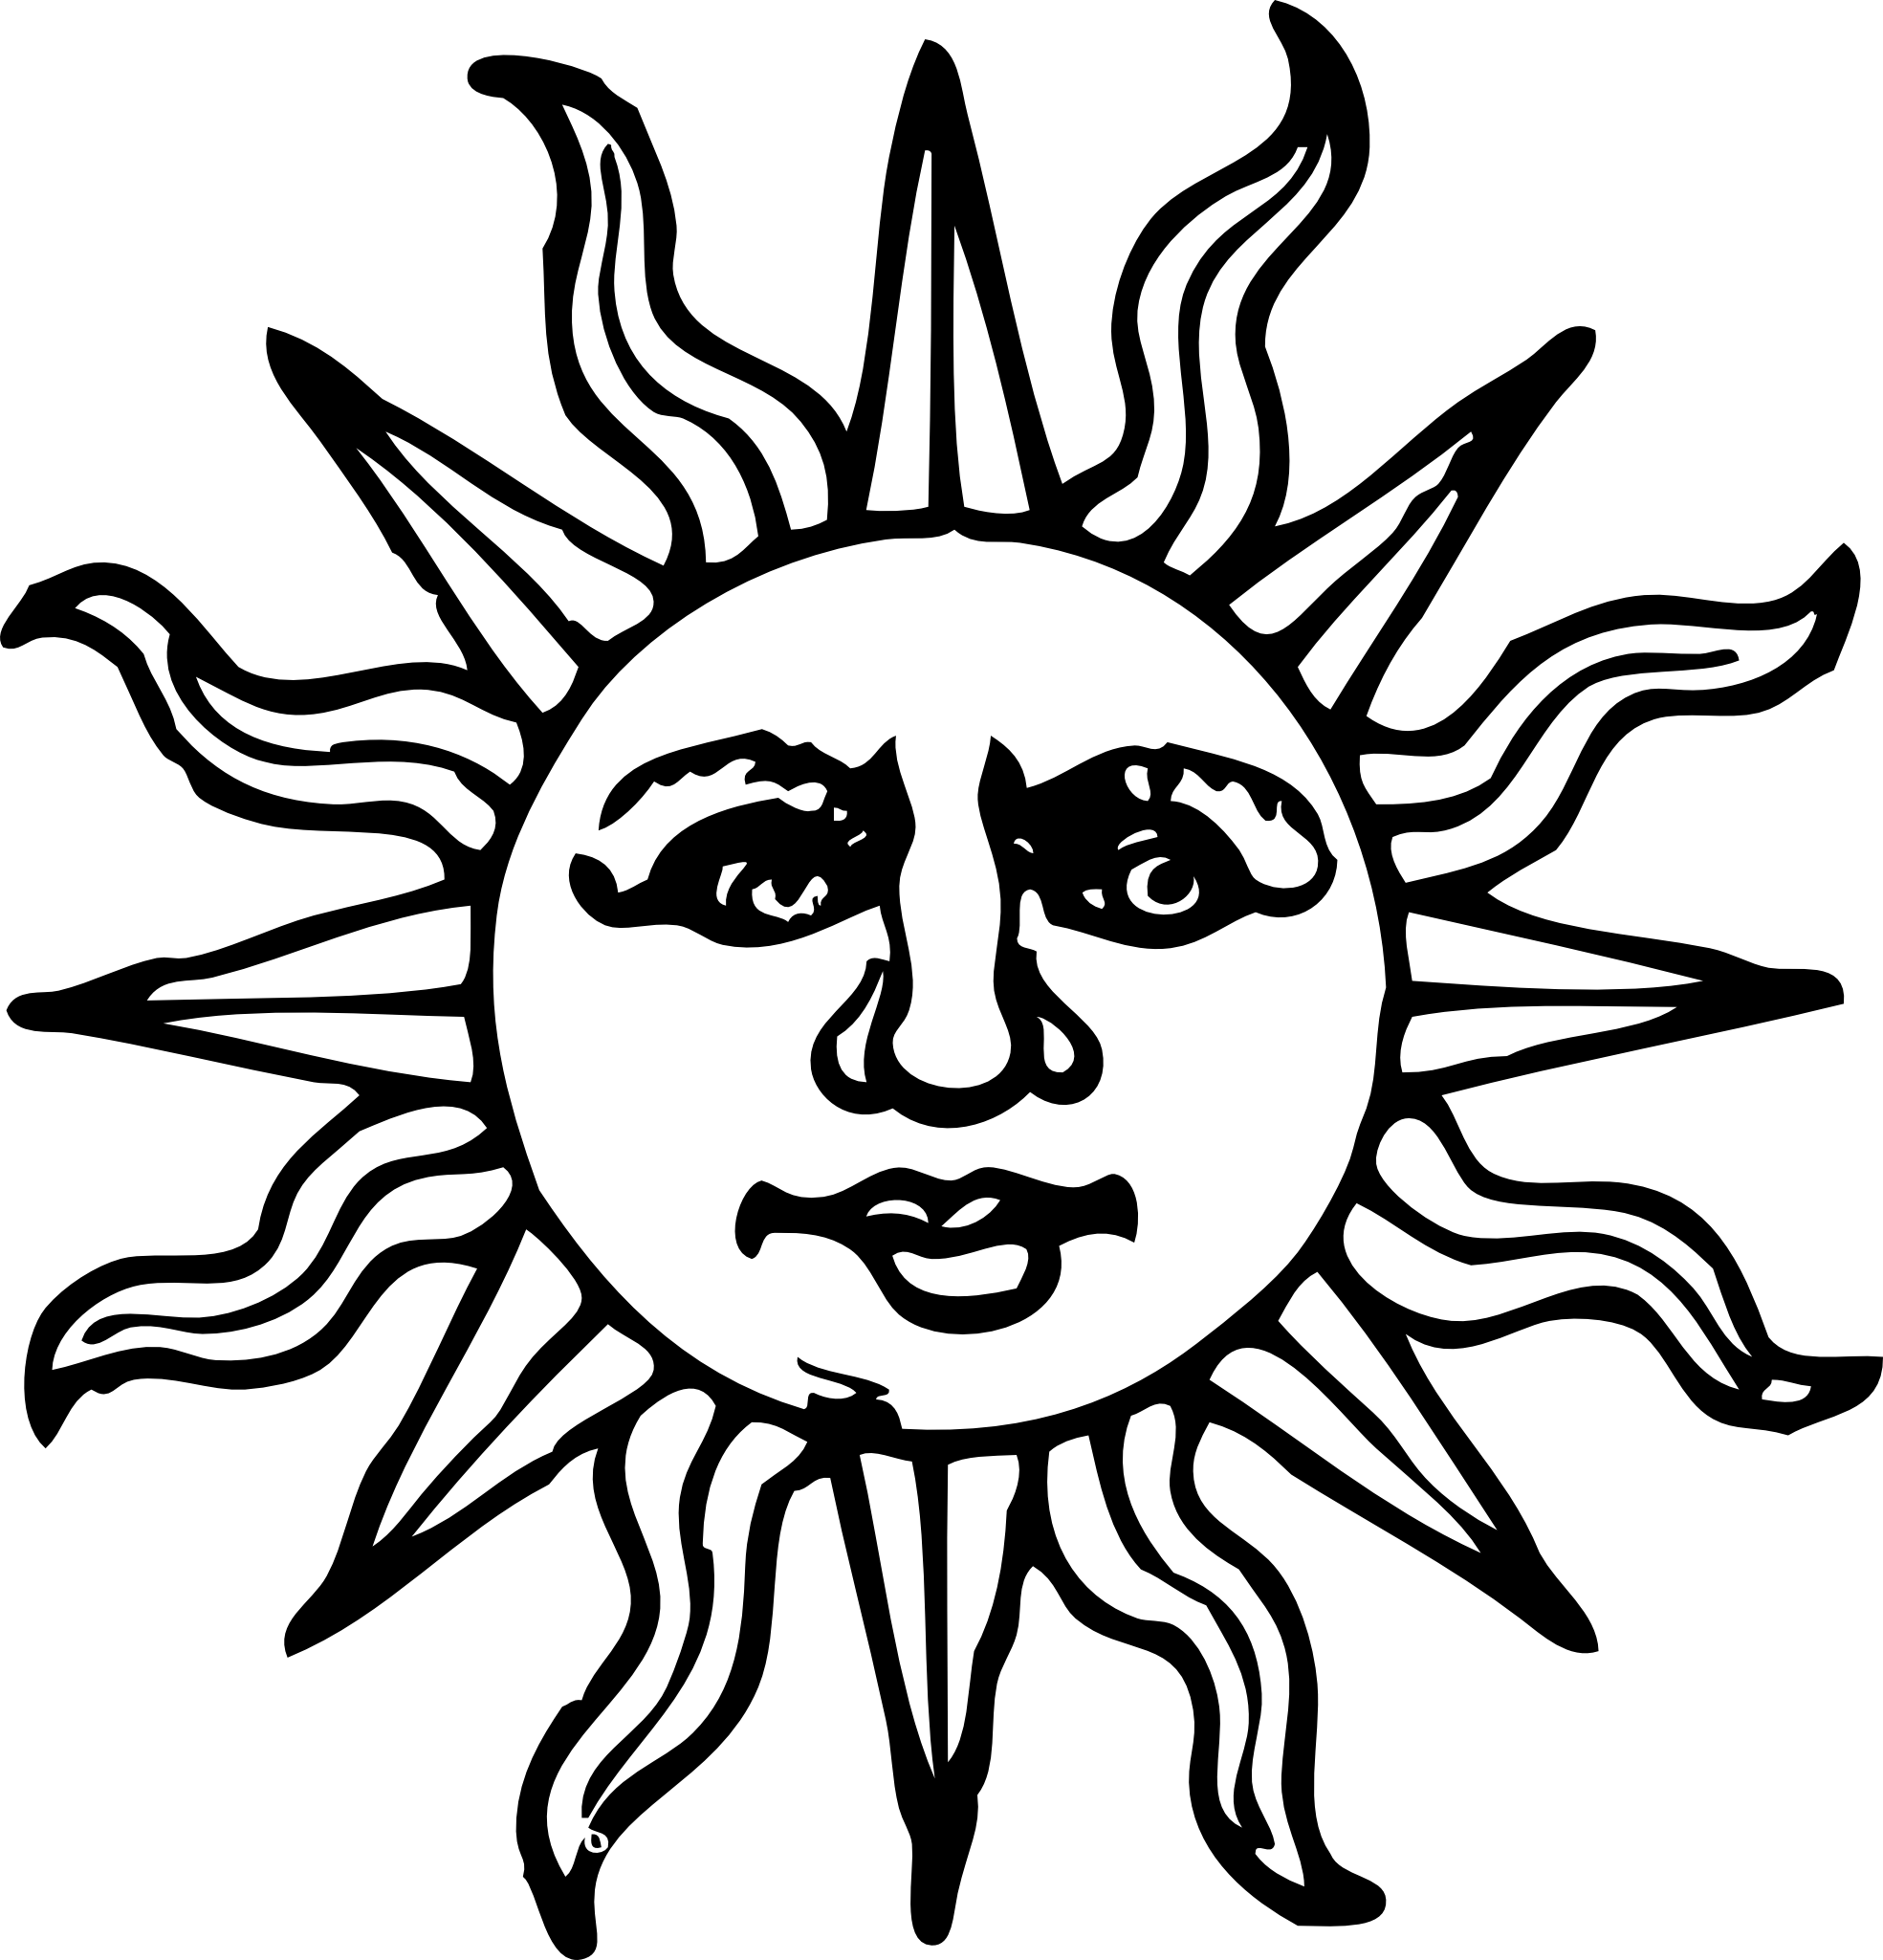 Tribal black and white clipart sun freeuse Sun Drawing Black And White at GetDrawings.com | Free for personal ... freeuse